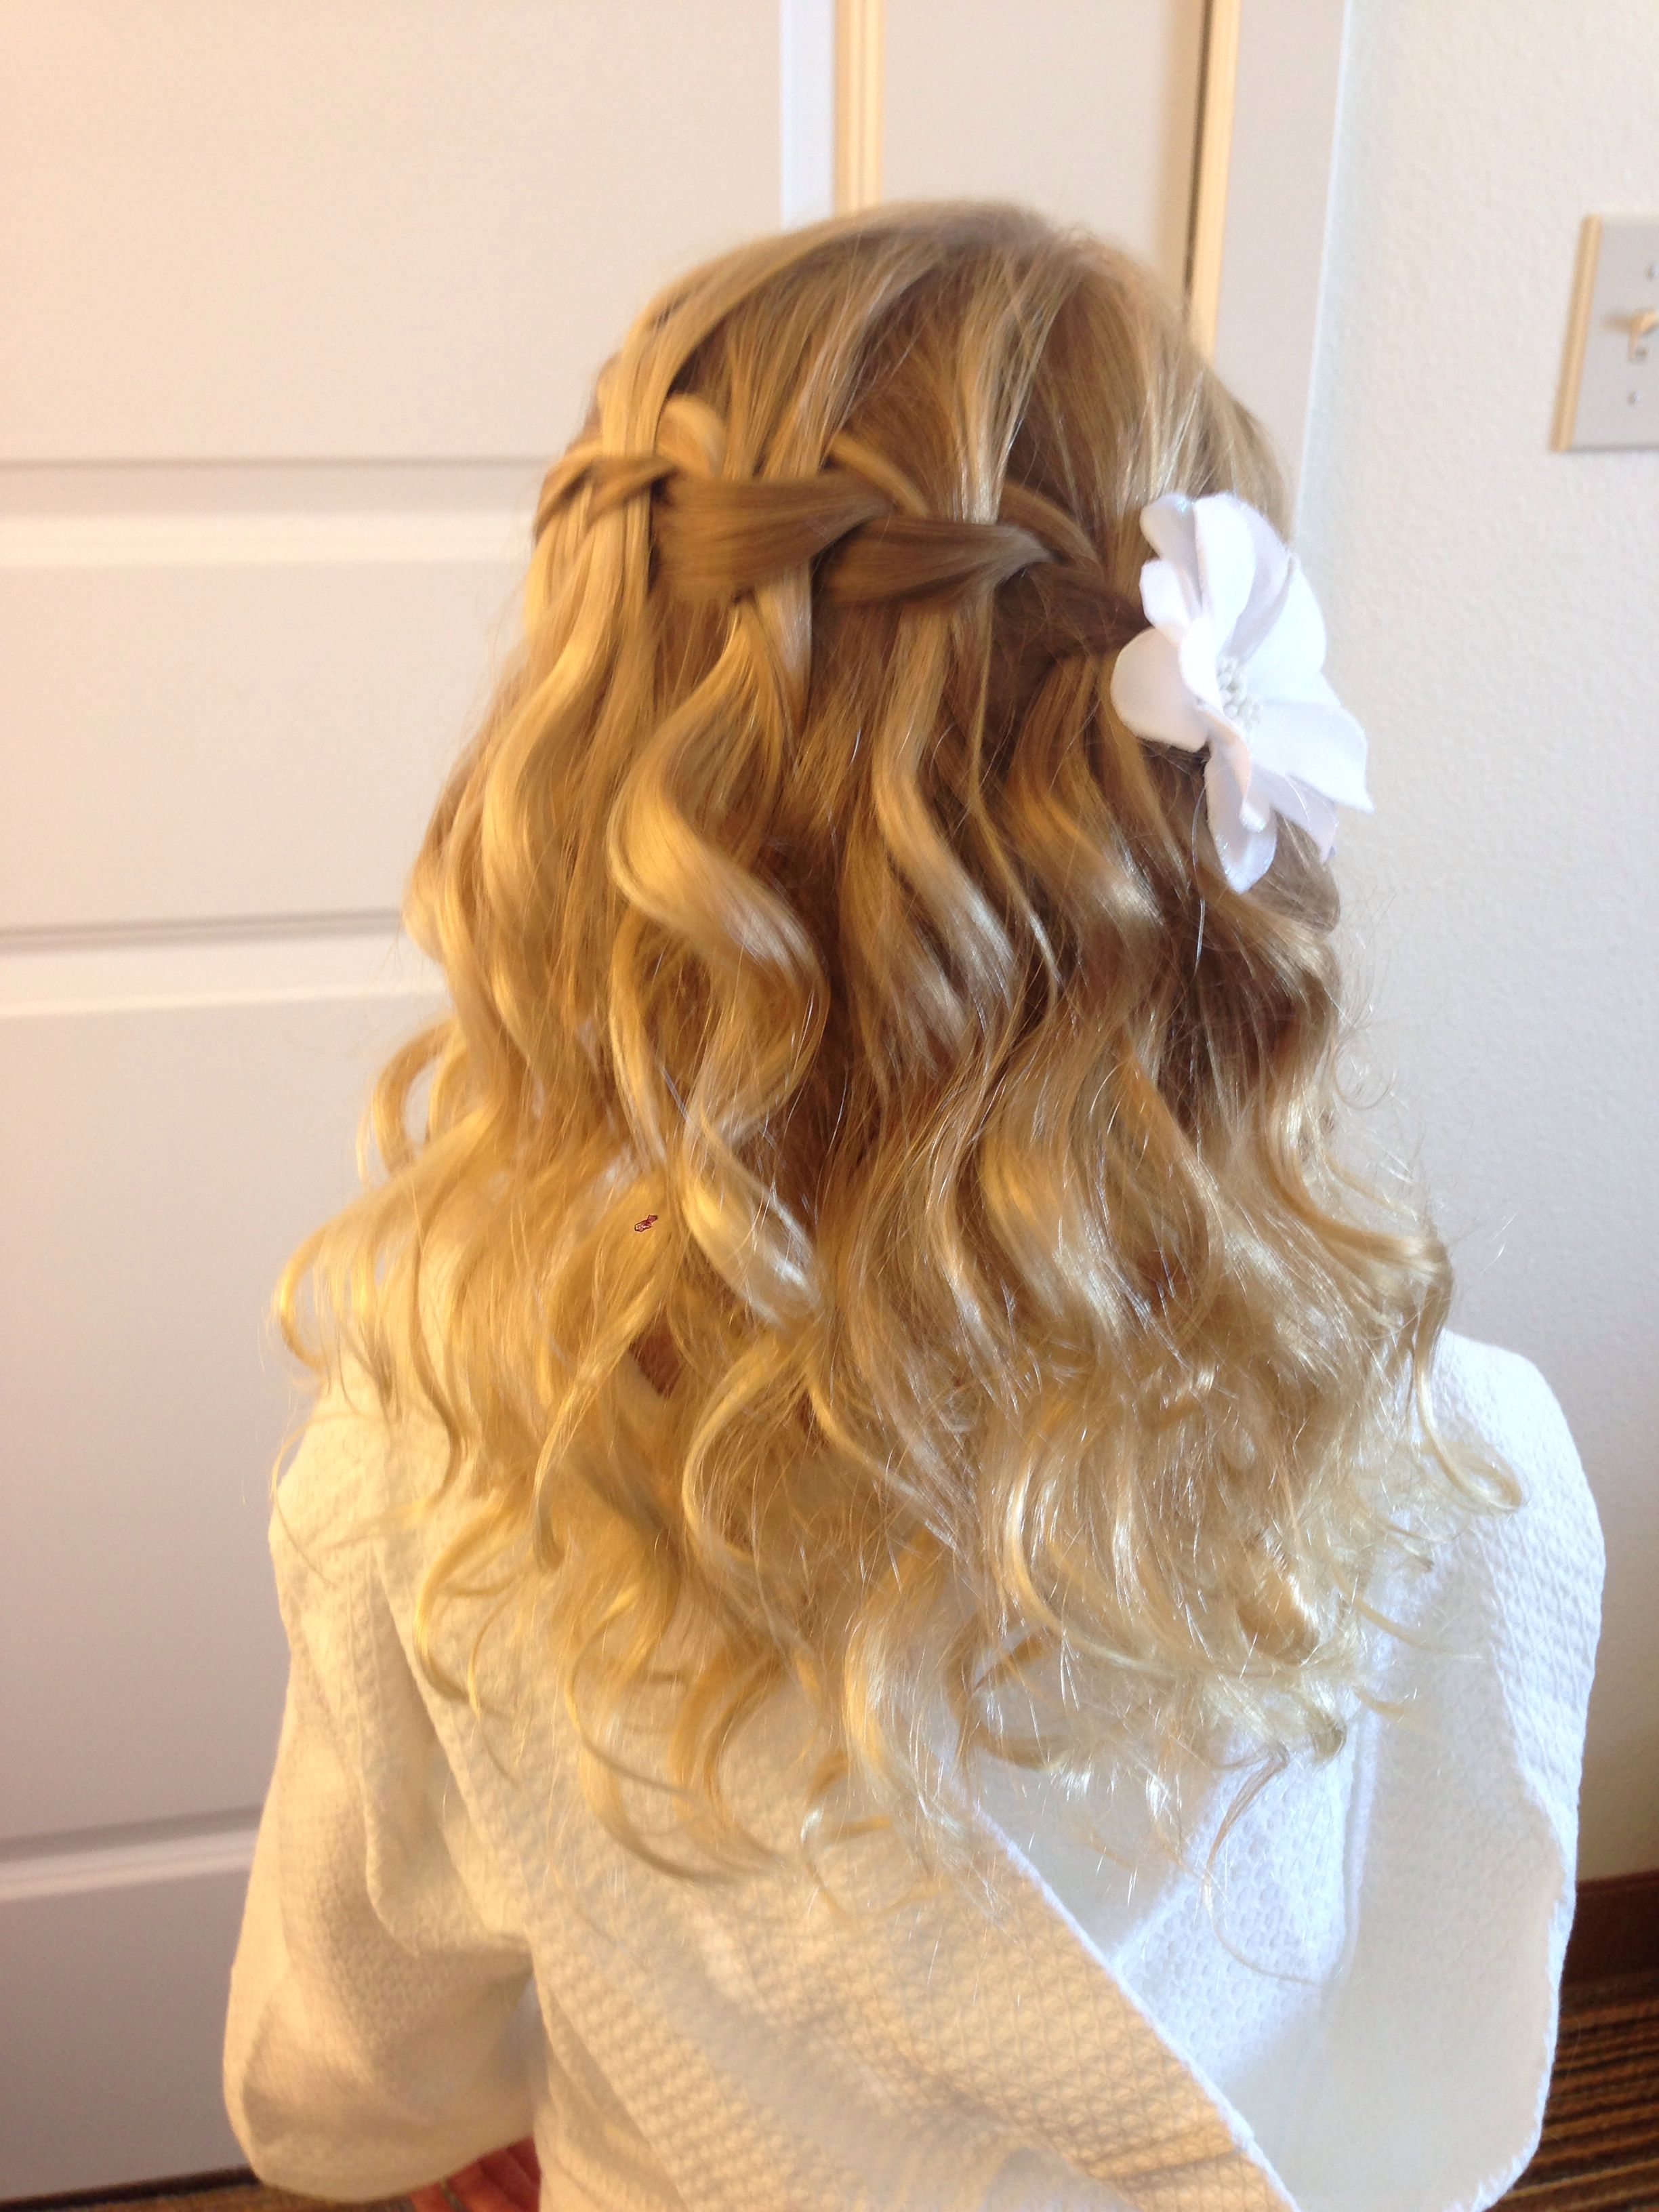 Pin By Melissa Kehl On Future Wedding Plus Option 1 Spring Colors Girl Hair Dos Kids Hairstyles For Wedding Easy Hairstyles For Kids